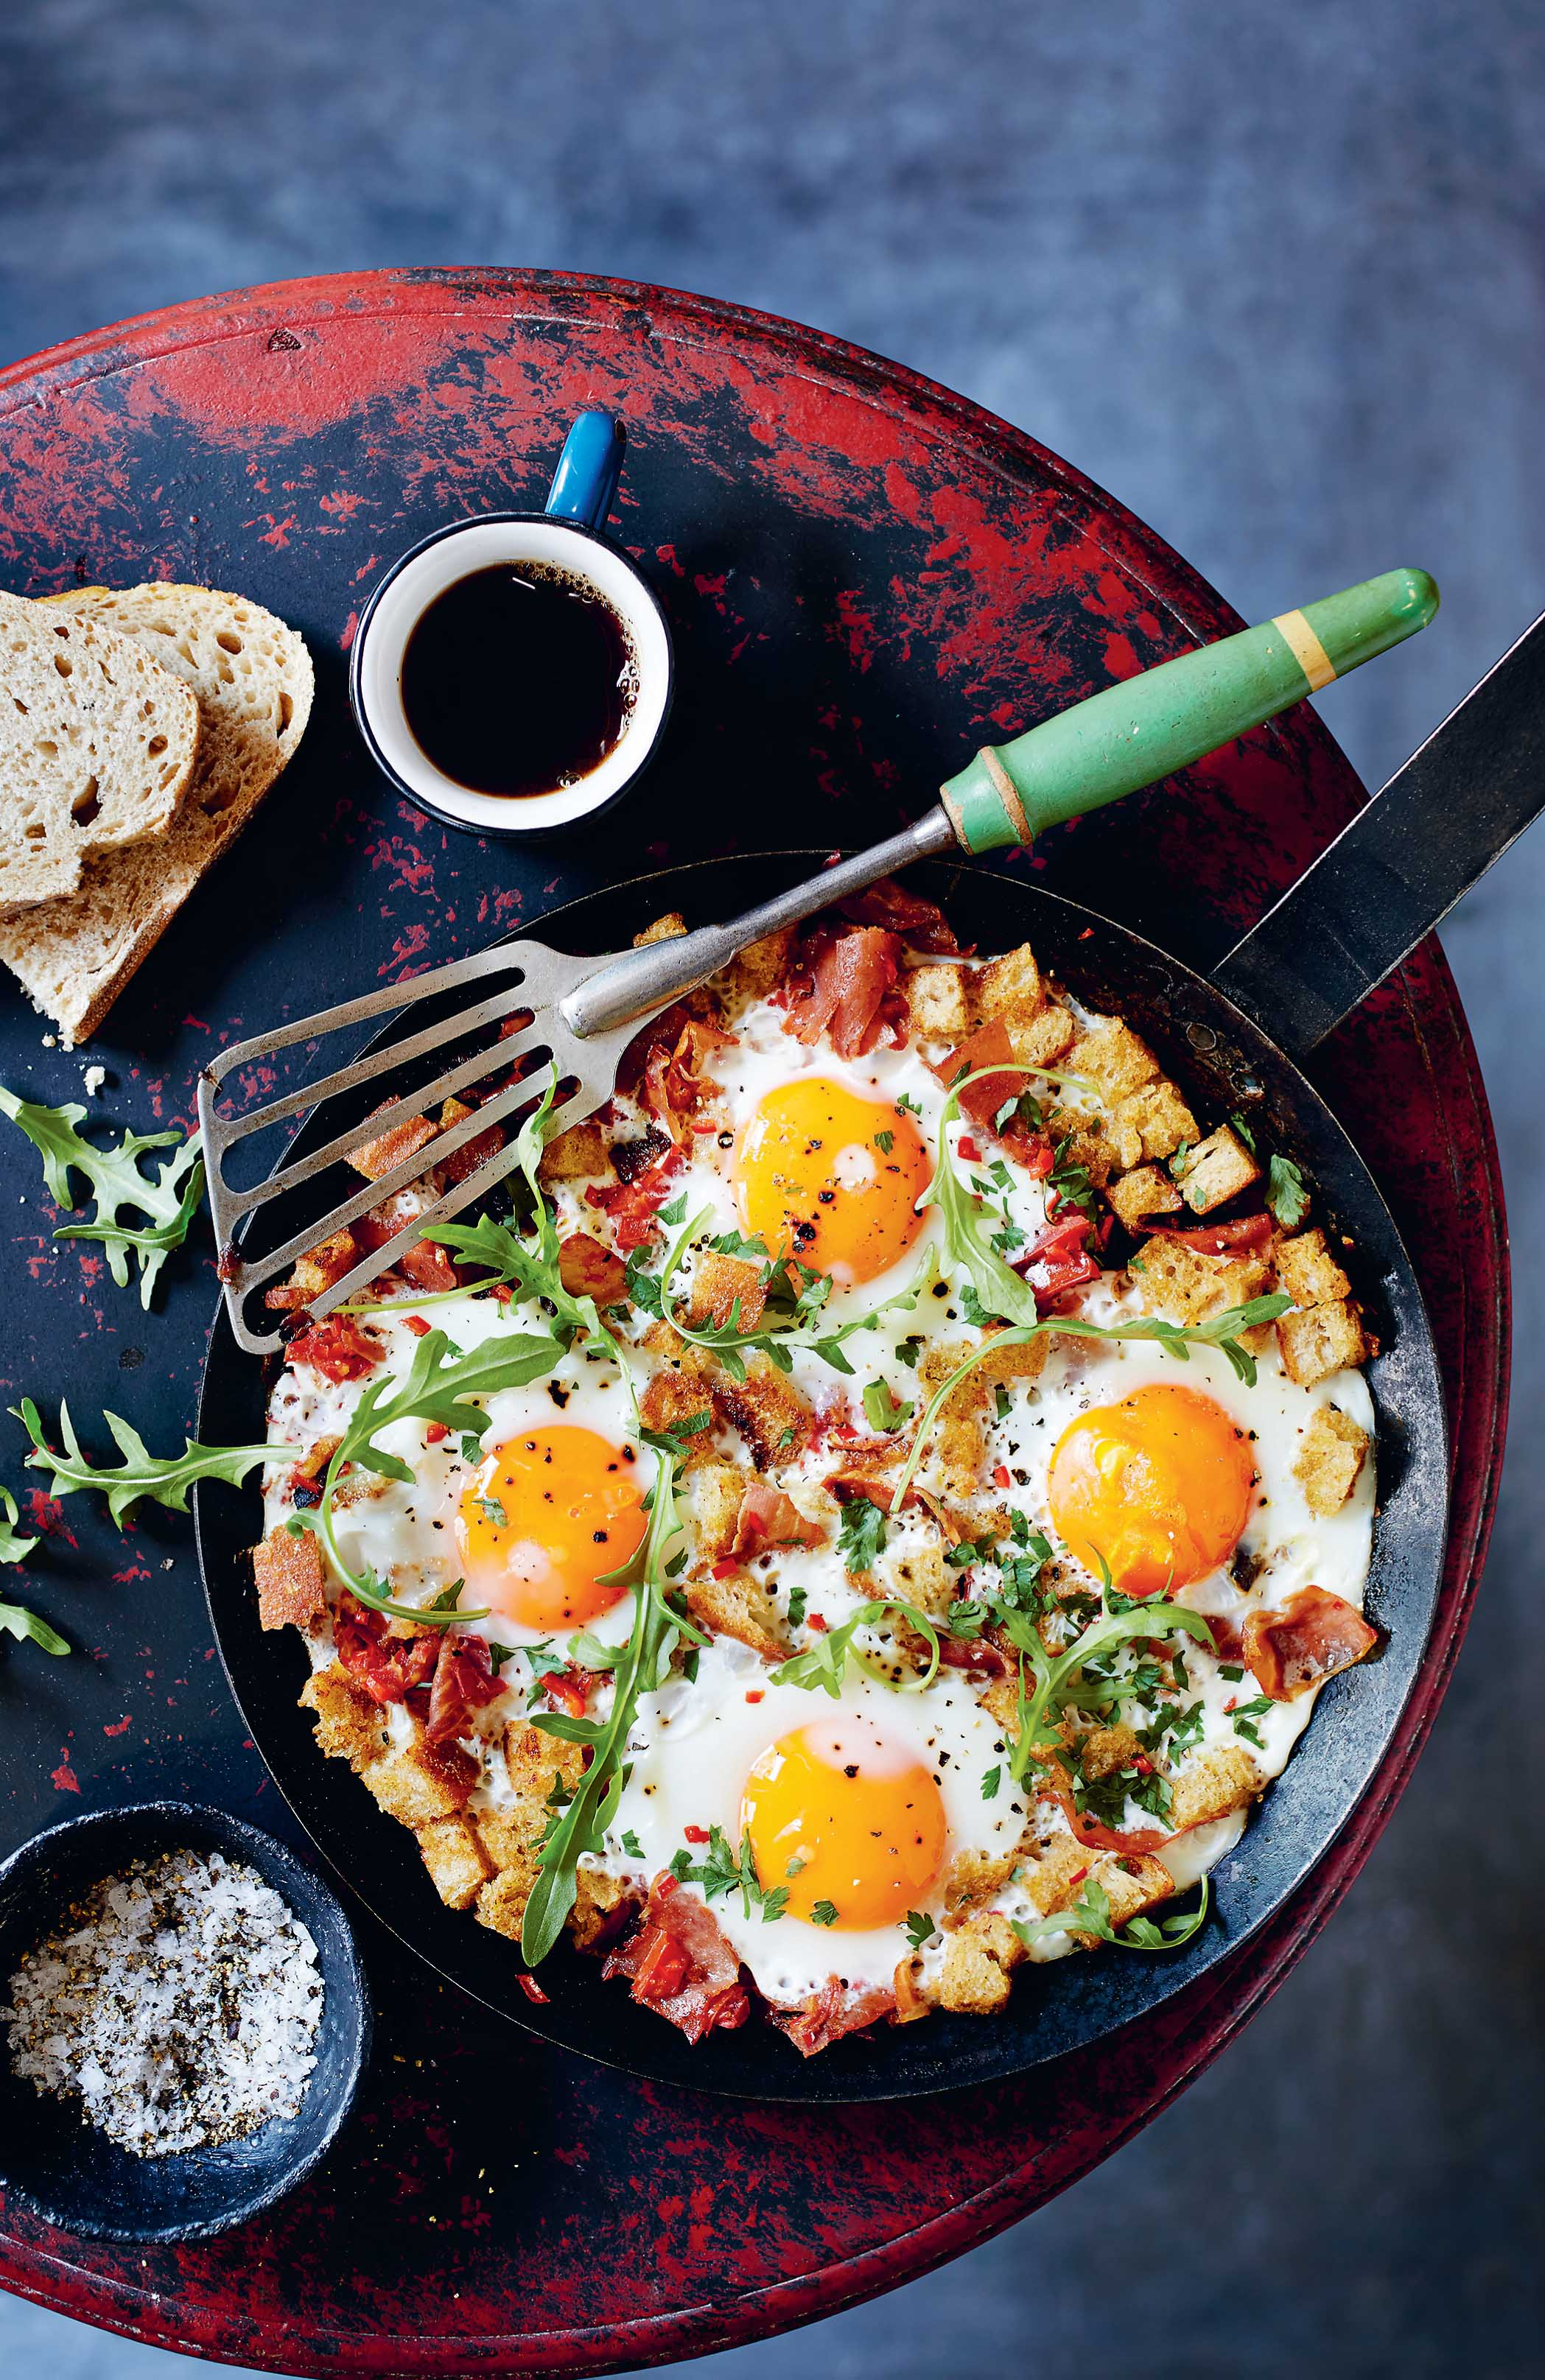 Prosciutto, chilli, eggs and rocket